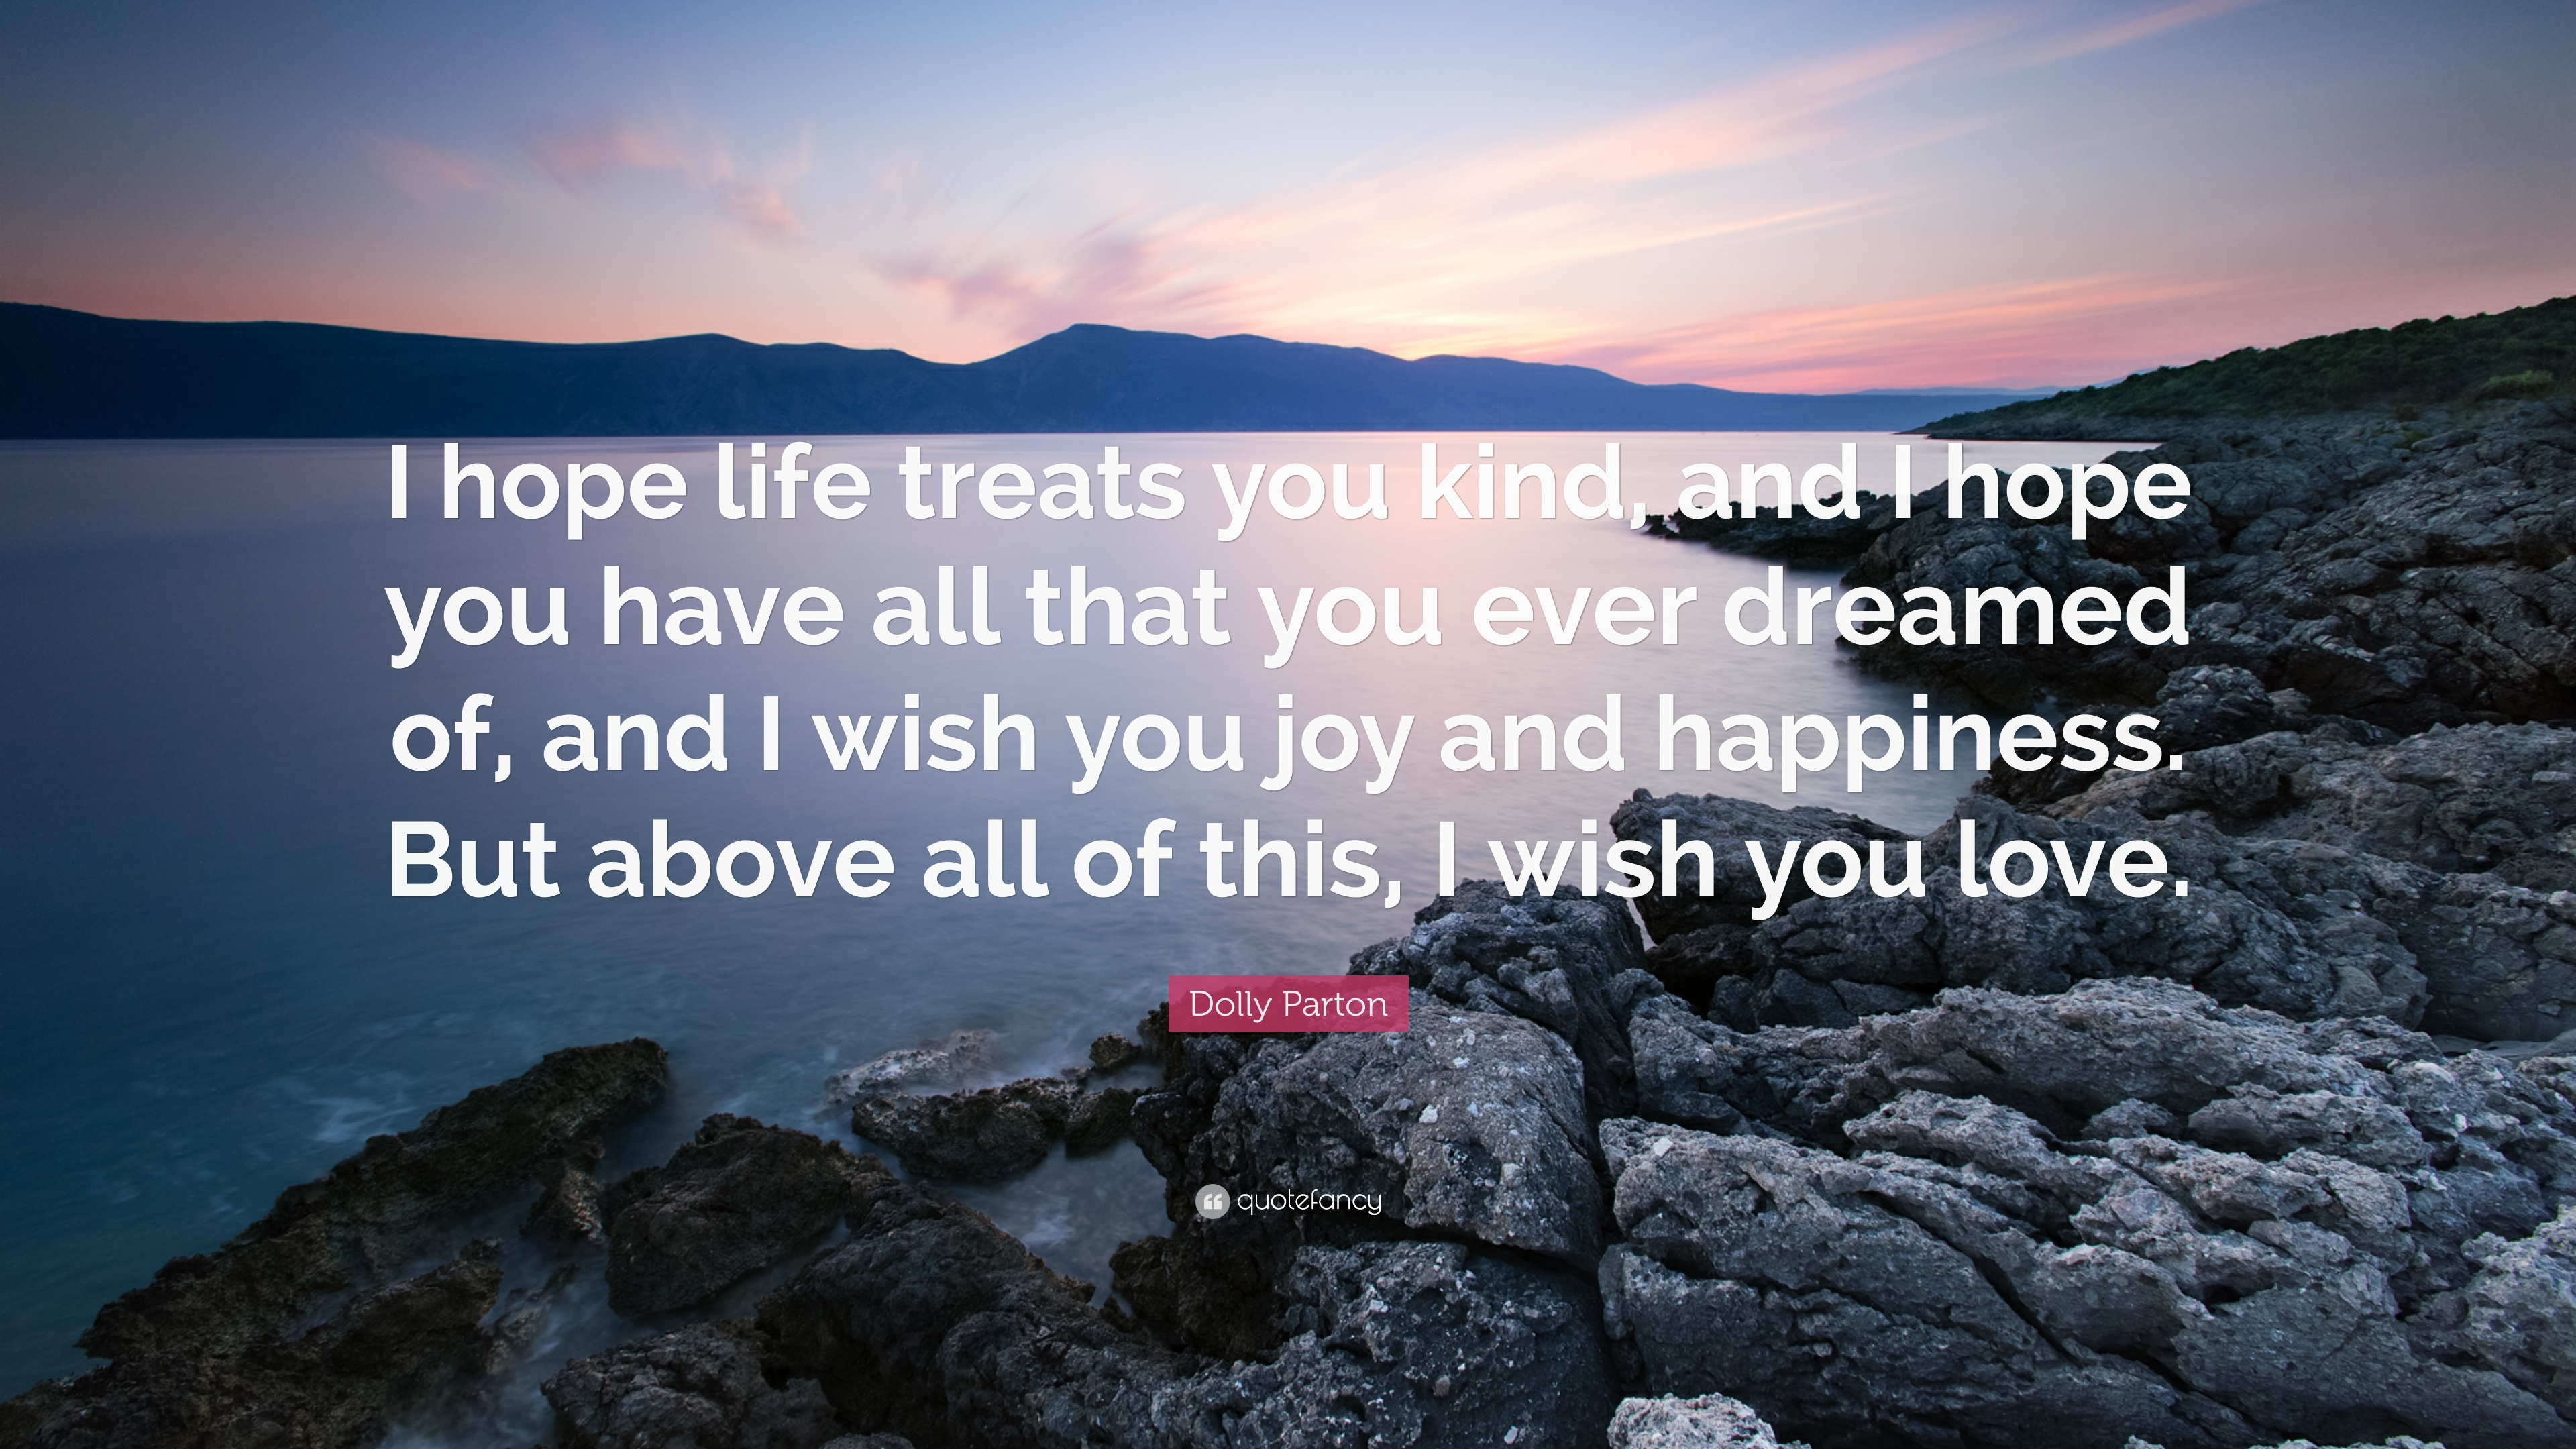 Dolly Parton Quote: U201cI Hope Life Treats You Kind, And I Hope You